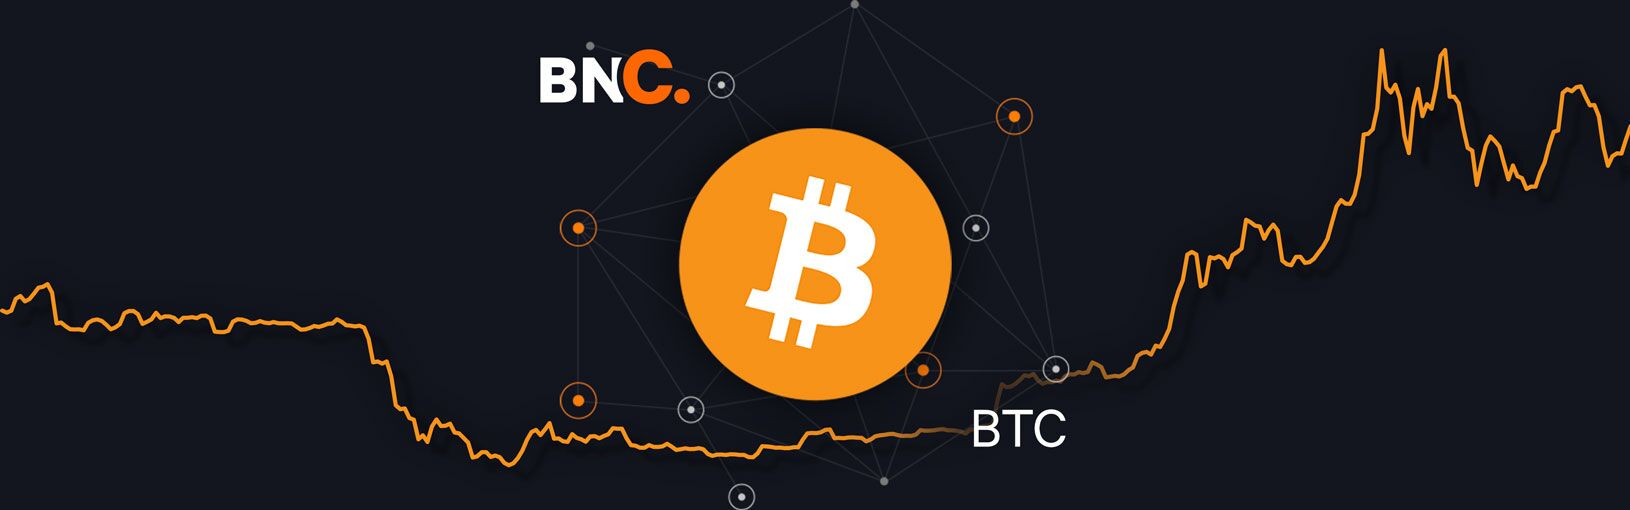 Bitcoin Price Analysis - Crucial week ahead » Brave New Coin